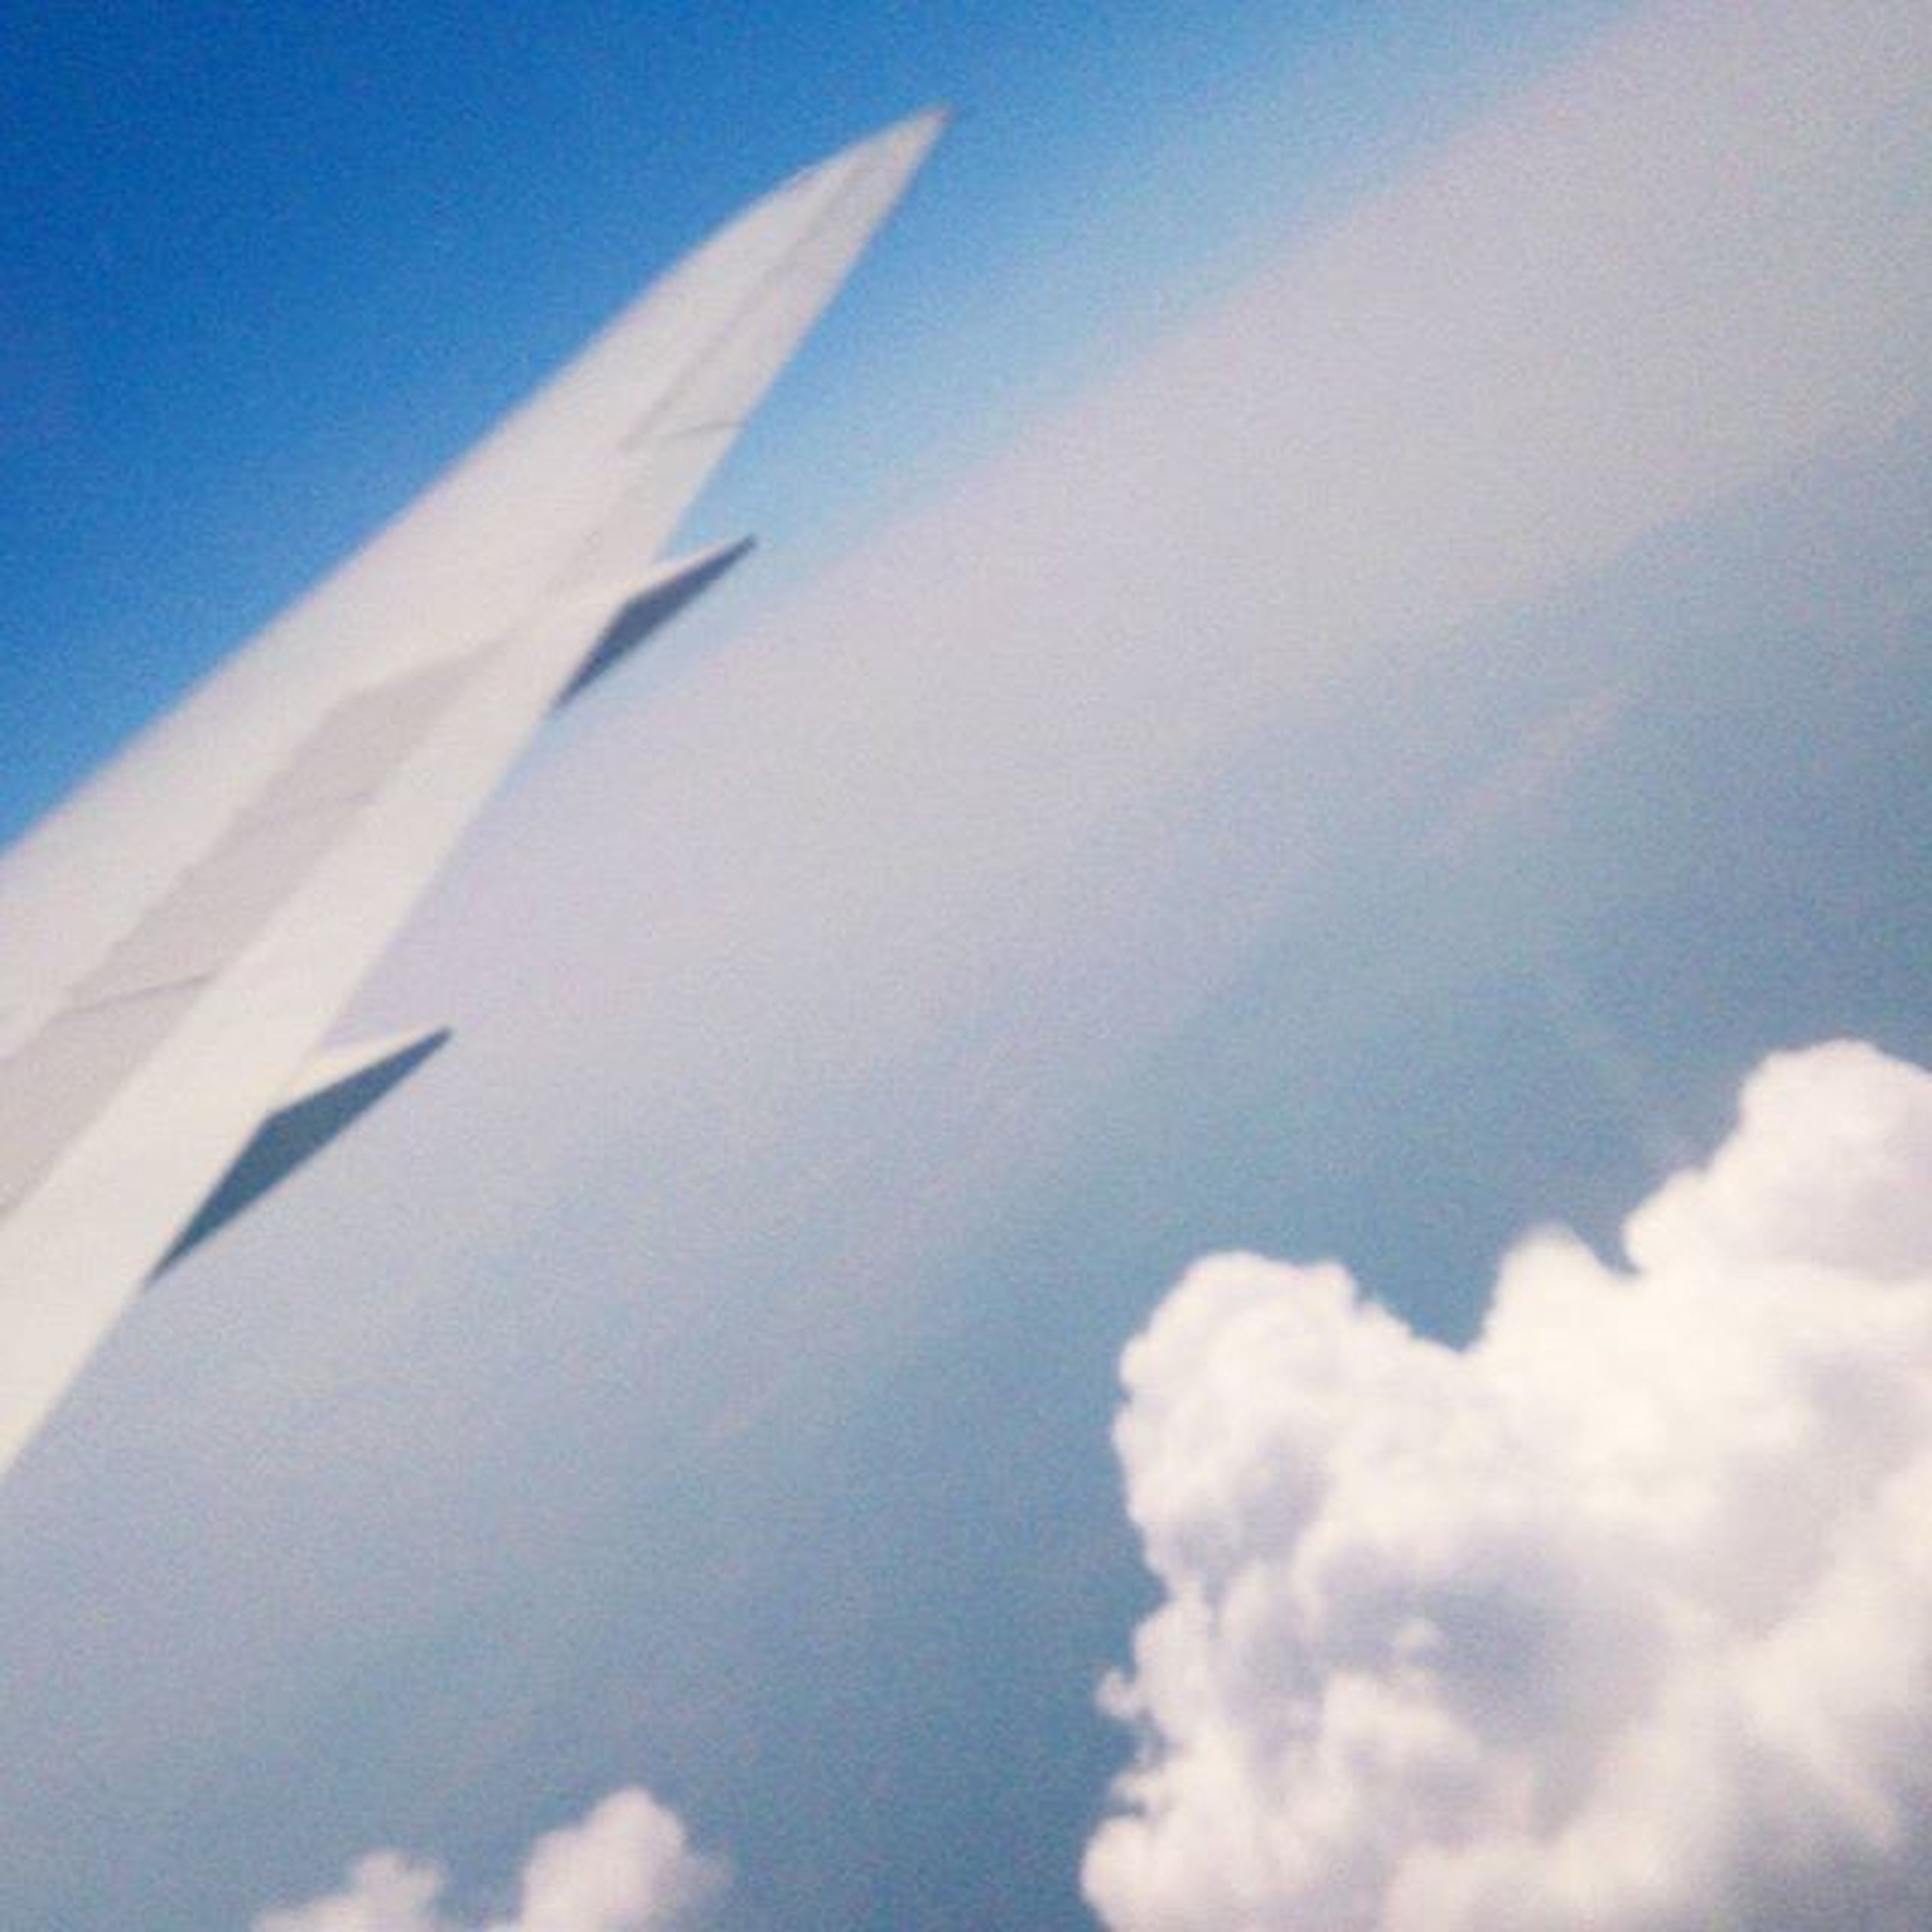 low angle view, airplane, blue, sky, air vehicle, flying, part of, transportation, cloud - sky, vapor trail, cropped, aircraft wing, nature, day, no people, outdoors, cloud, mode of transport, white color, beauty in nature